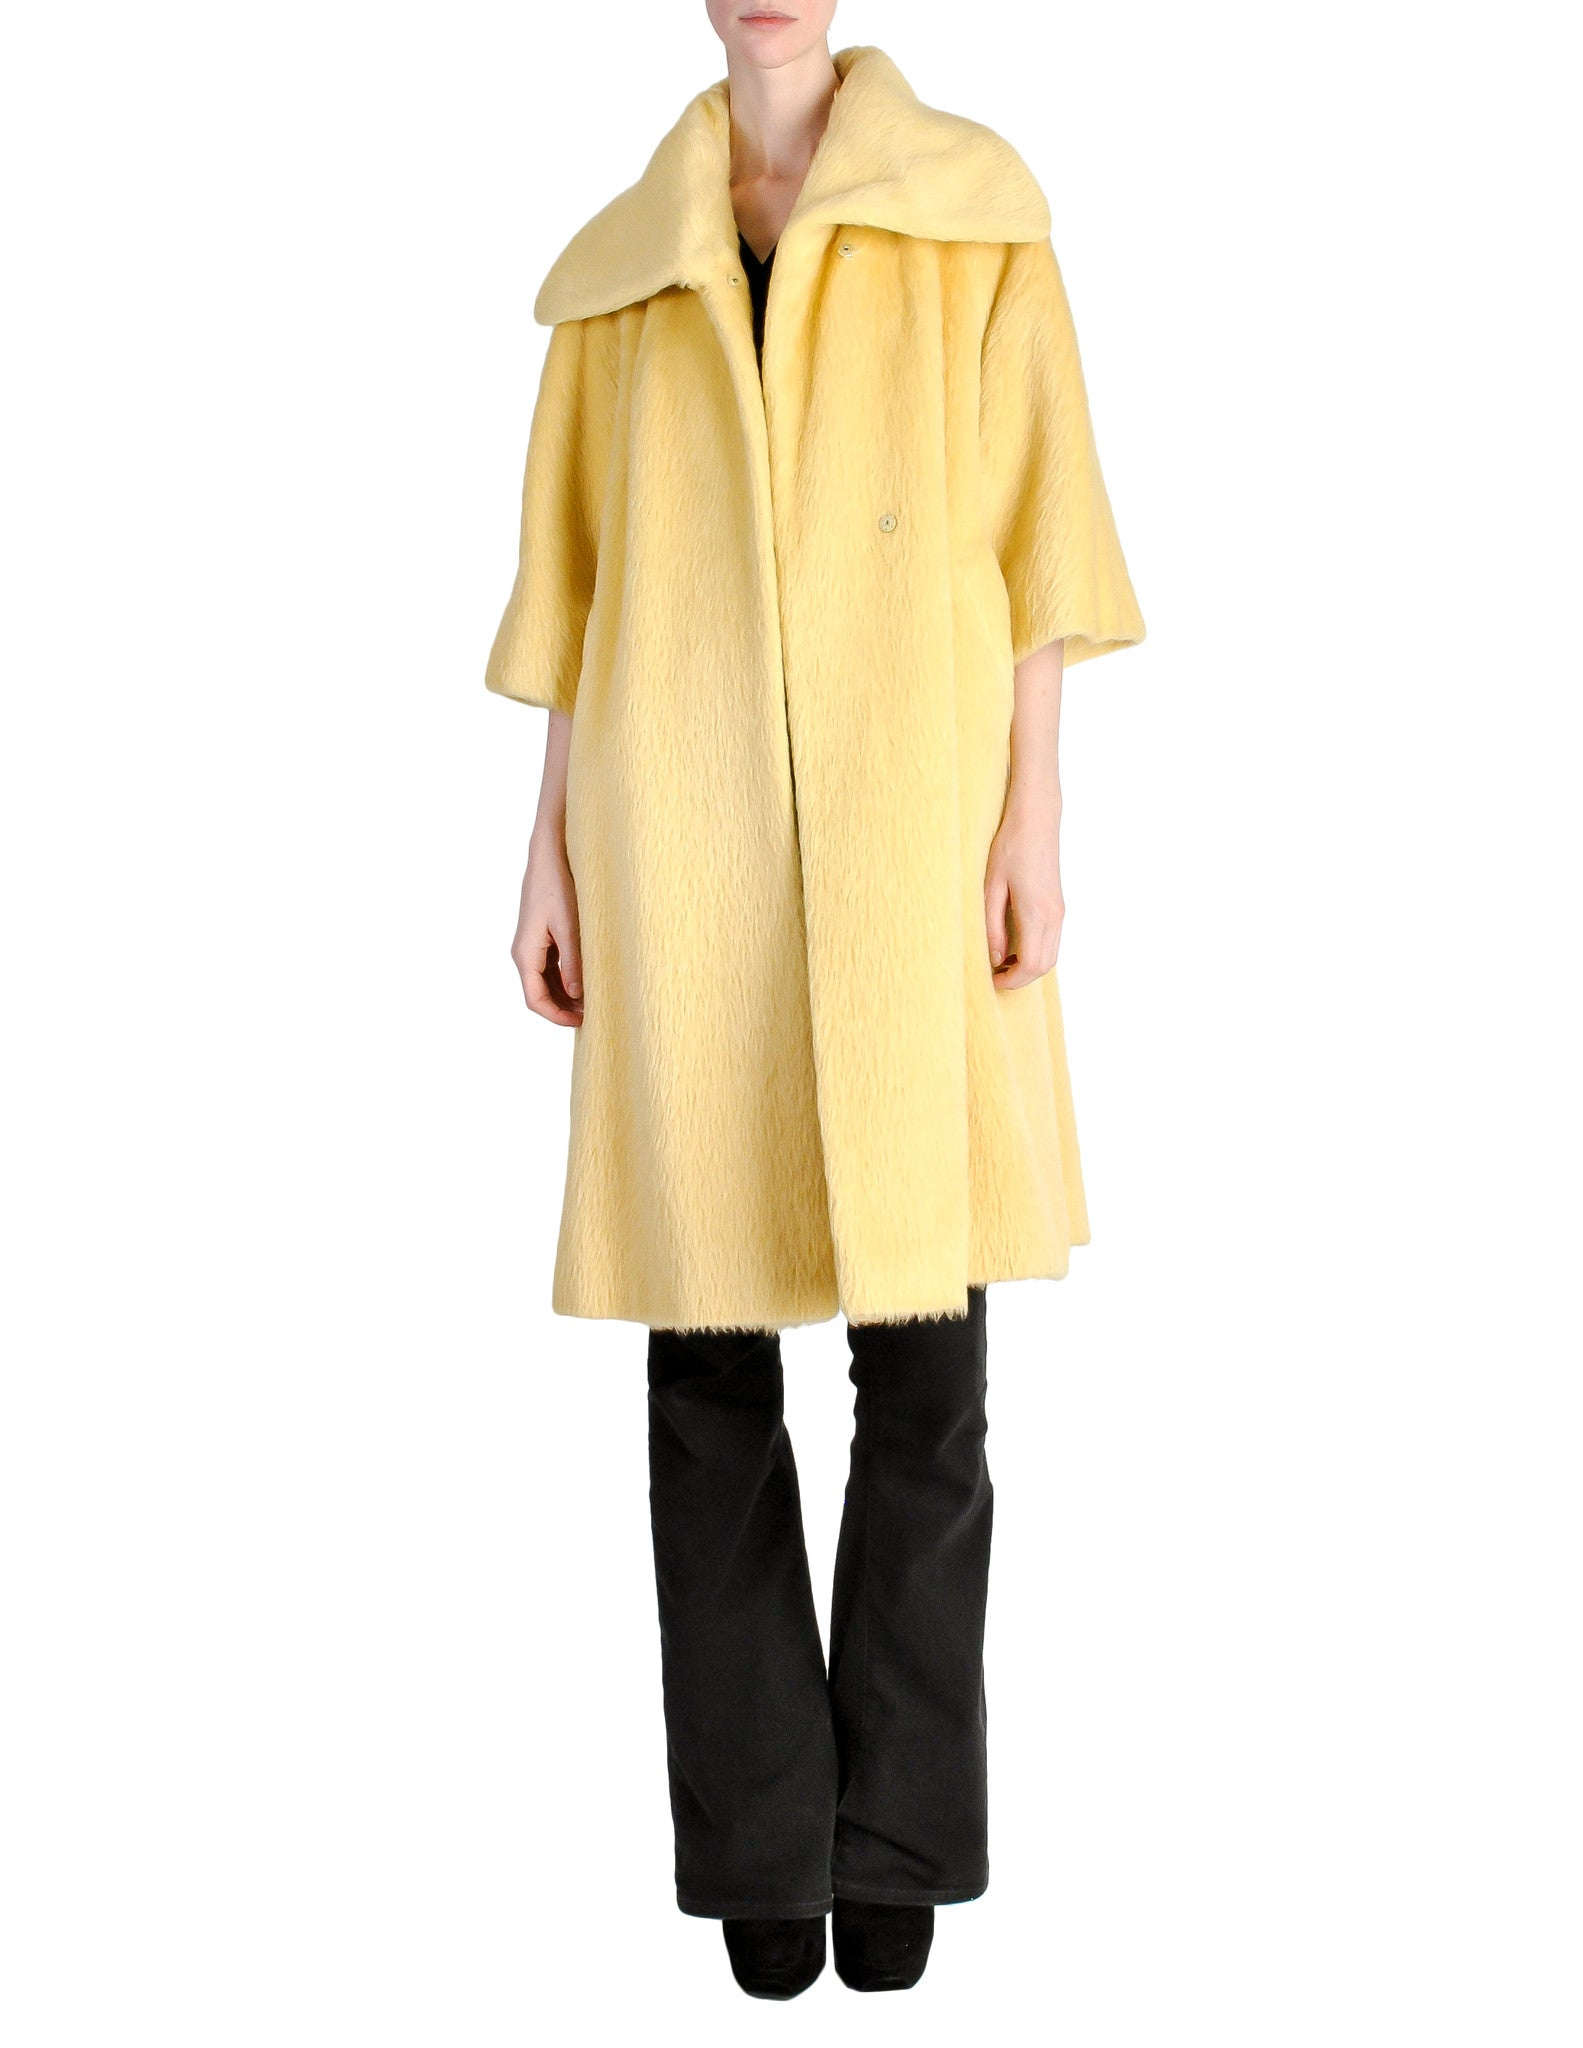 Lilli Ann Vintage Banana Yellow Wool Mohair Swing Coat - Amarcord Vintage Fashion  - 1